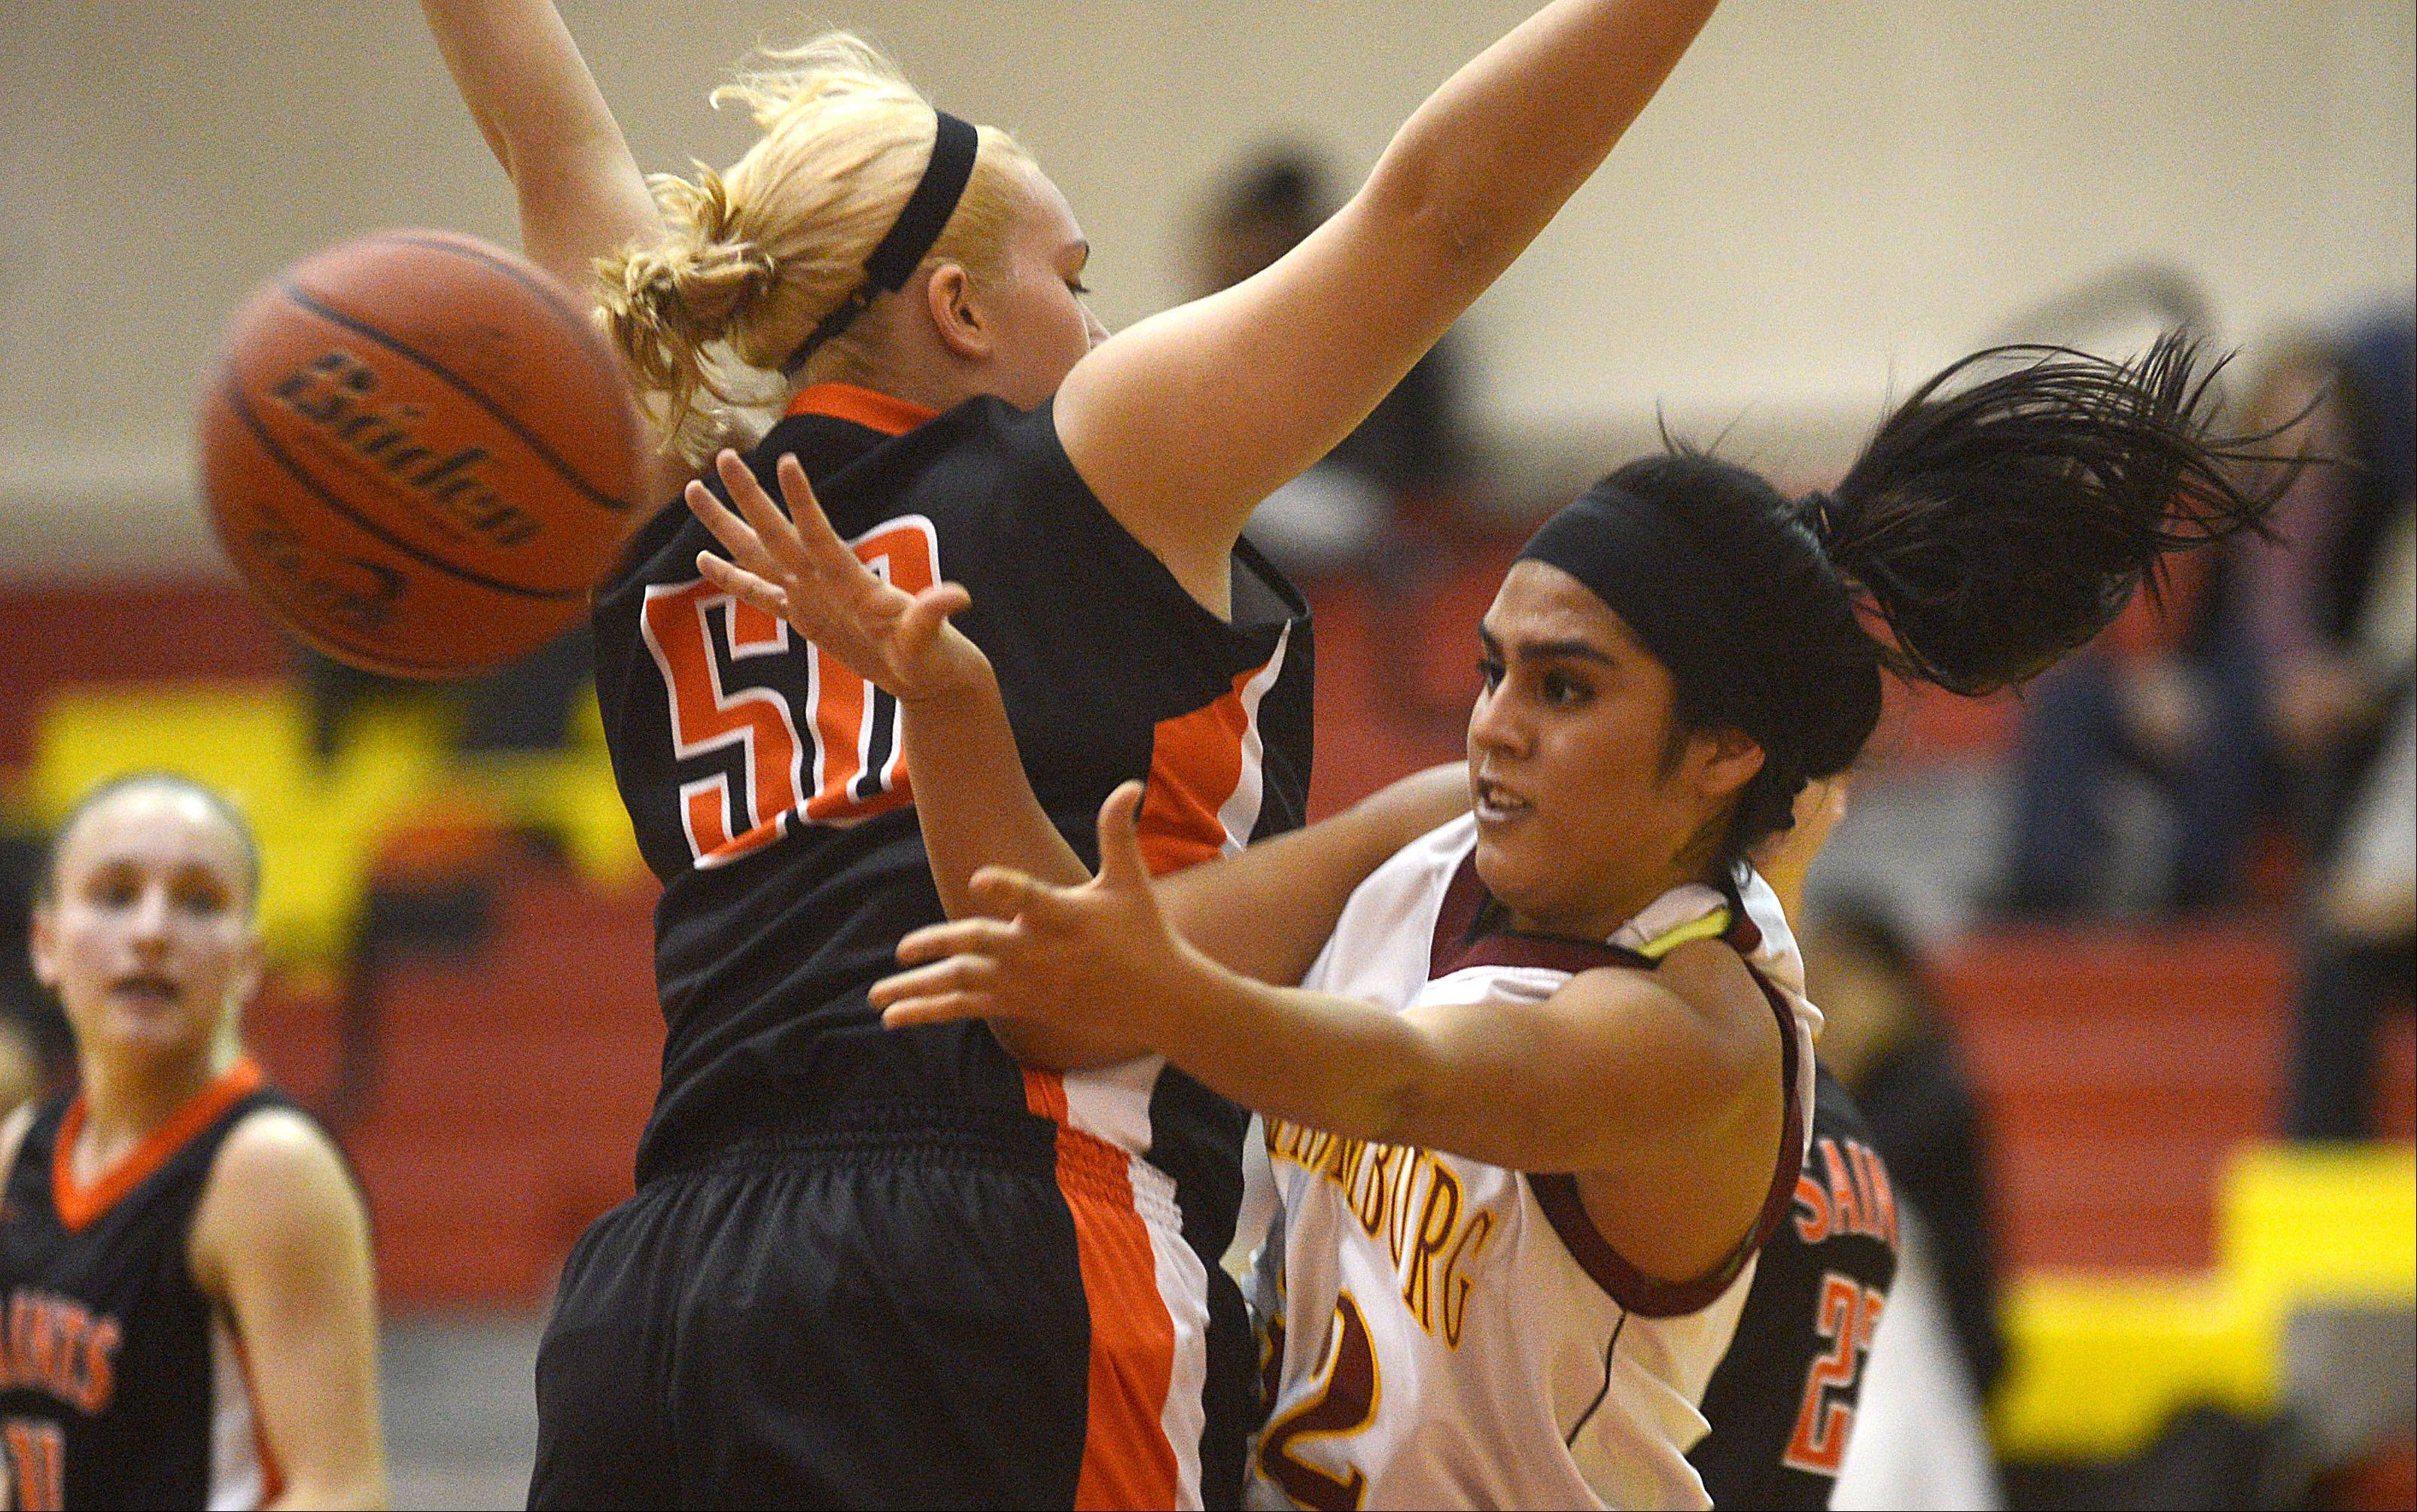 St. Charles East�s Chloe John plays defense as Schaumburg�s Lillian Chavarria, right, dishes the ball past during a varsity girls basketball game at Schaumburg High School on Monday evening.